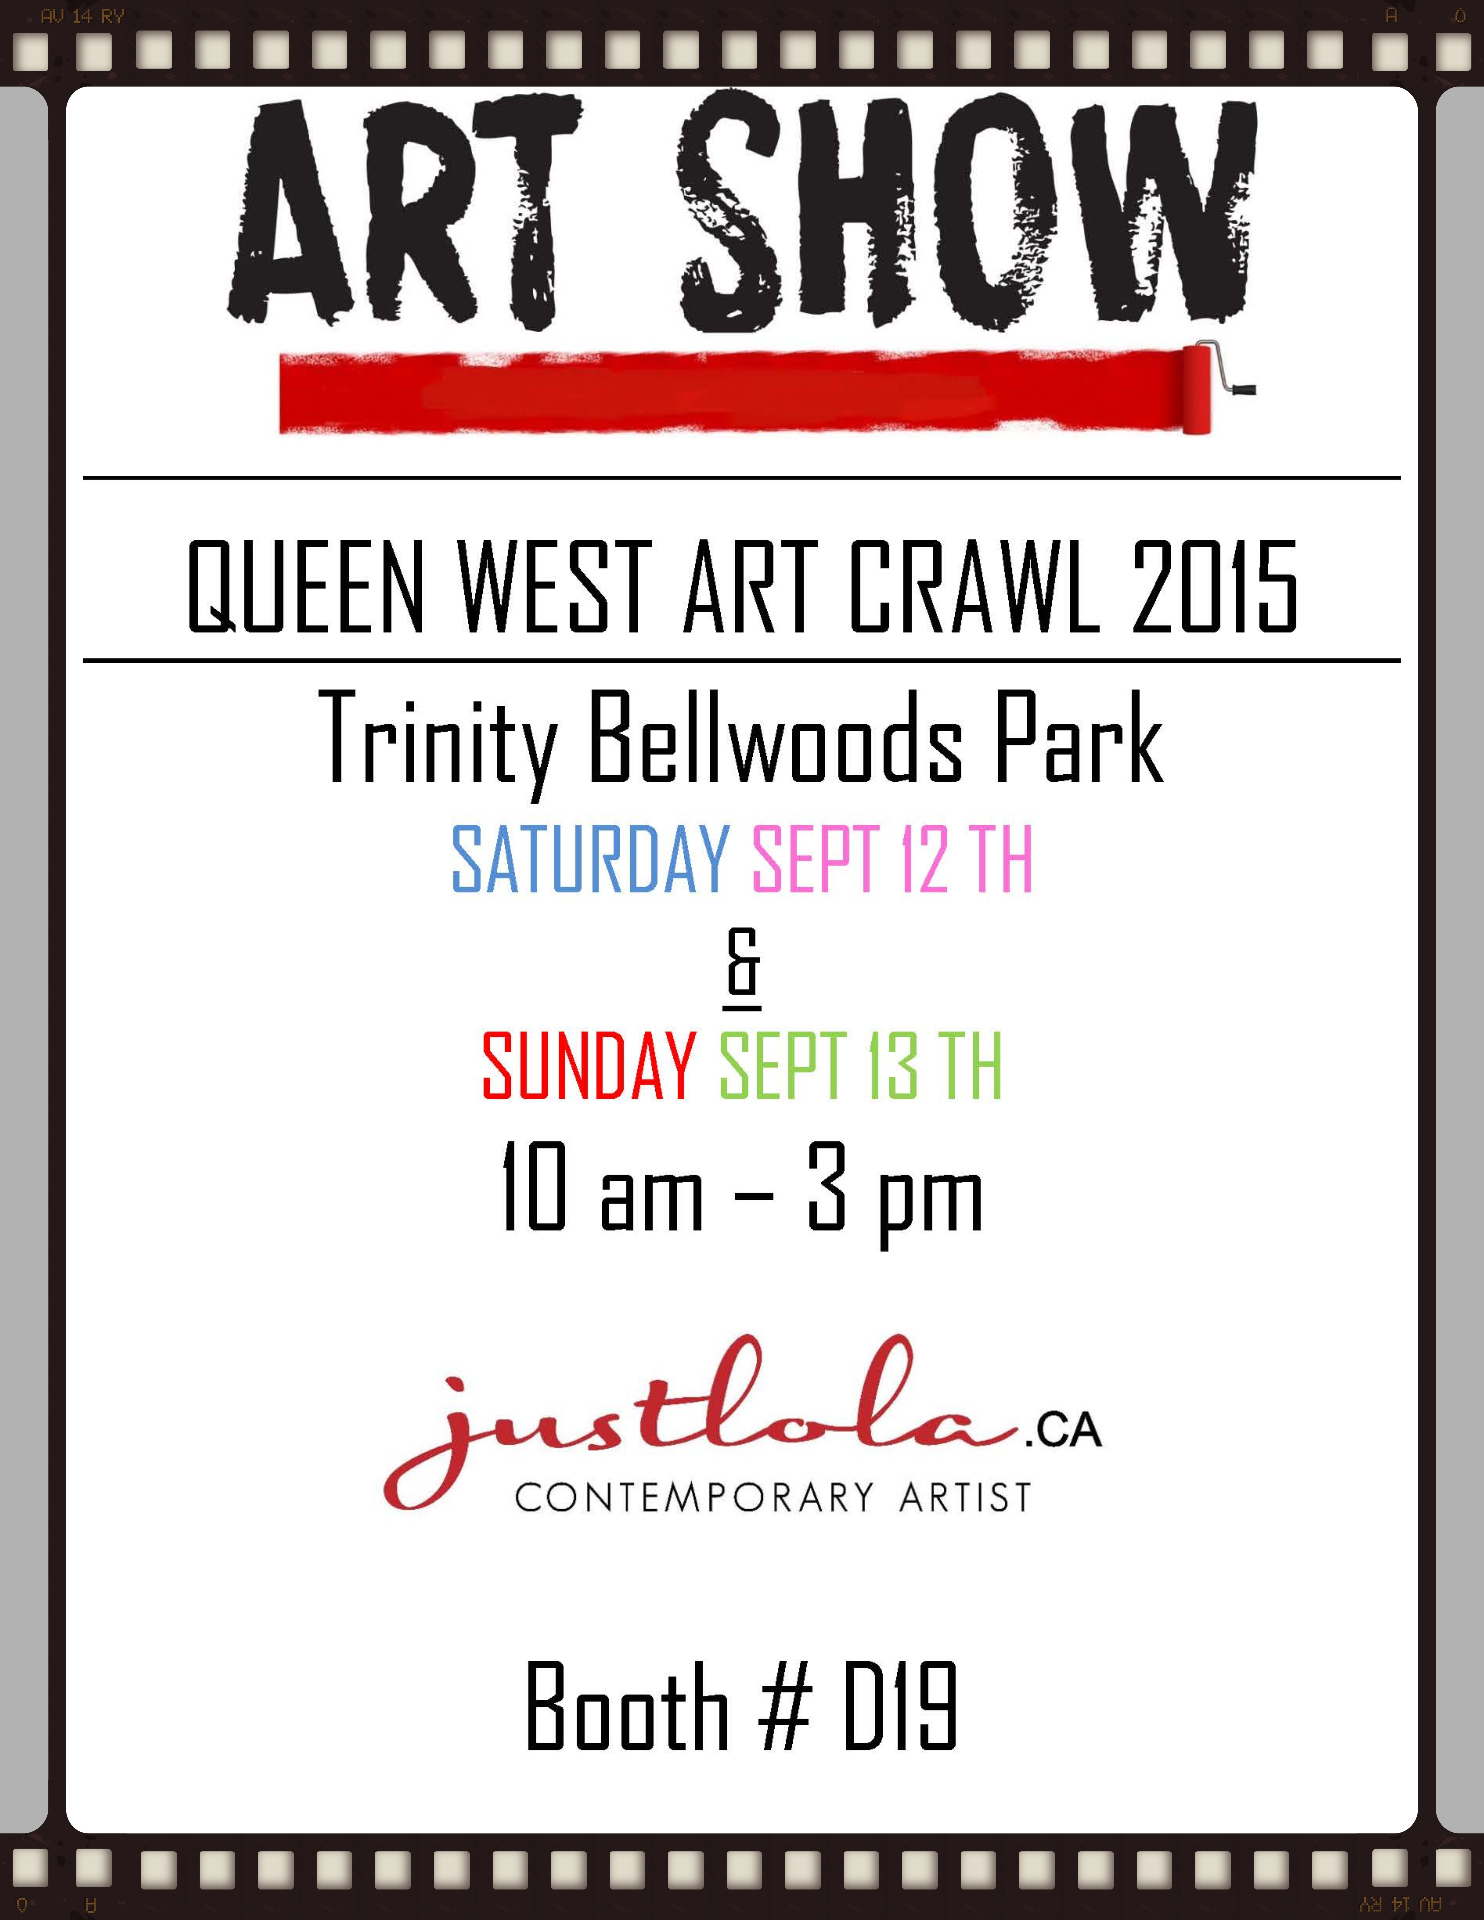 QUEEN WEST ART CRAWL 2015